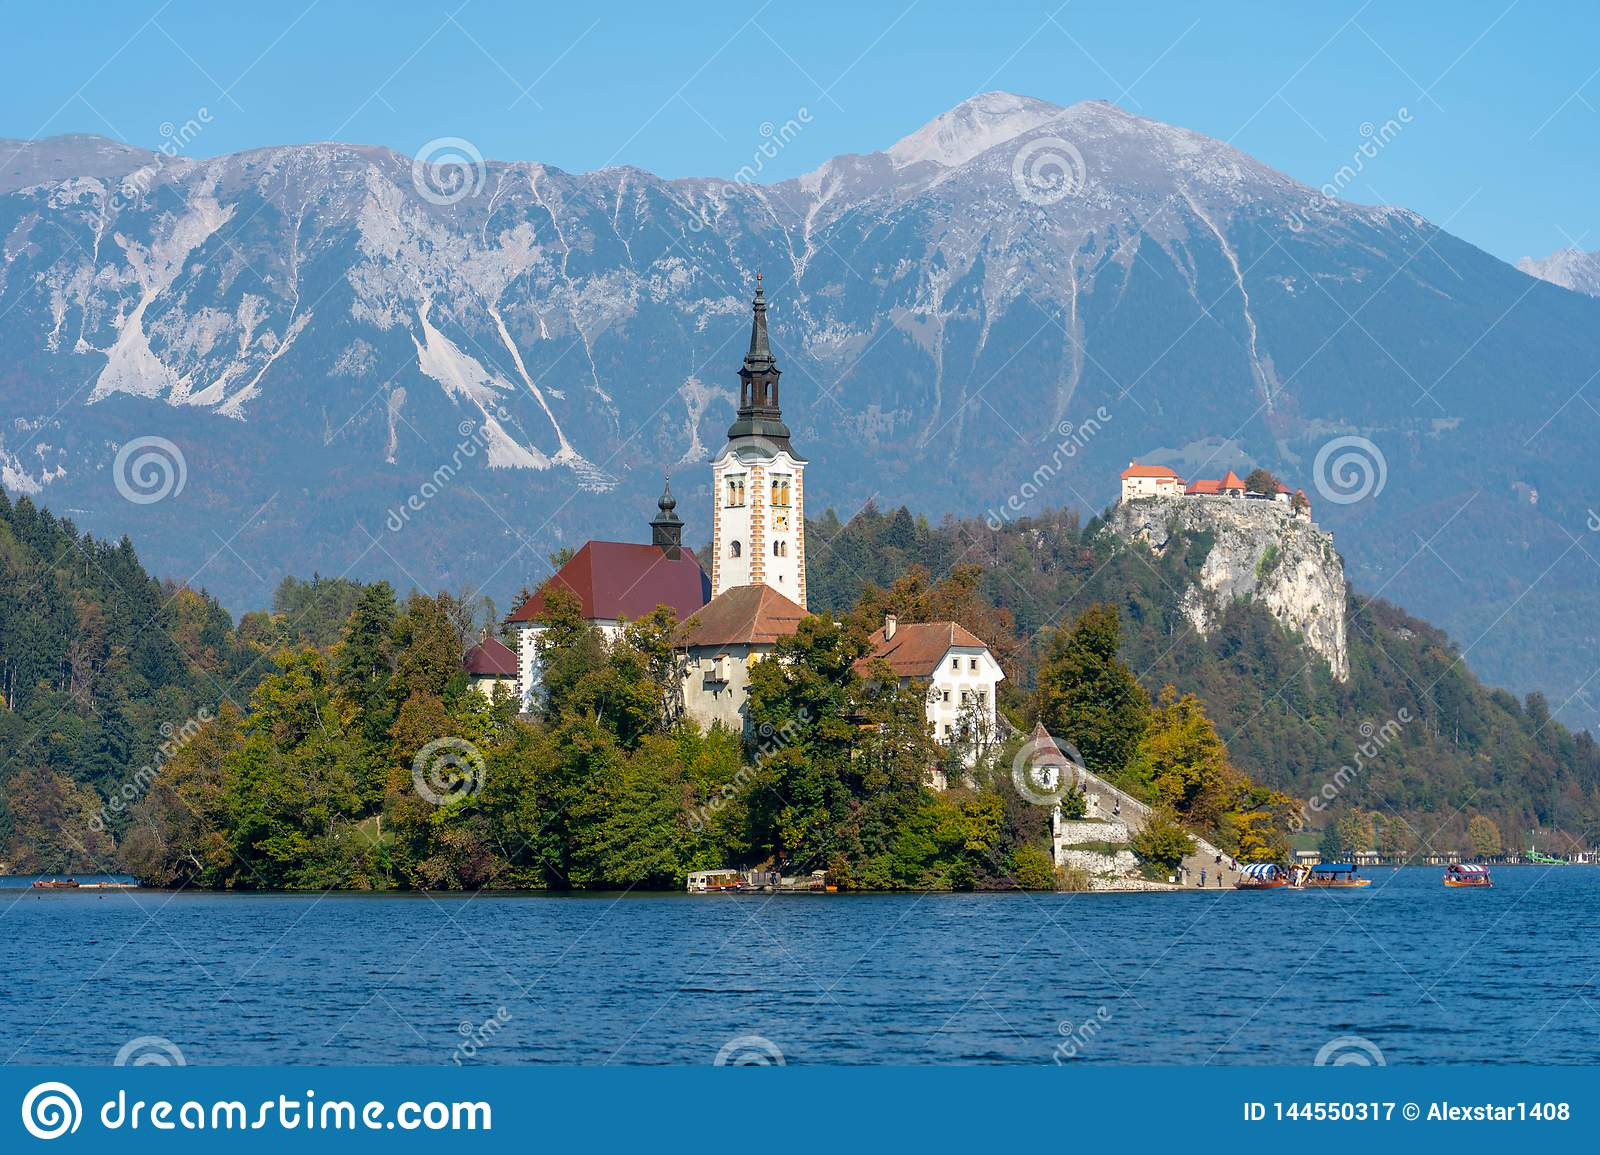 Lake Bled island with mountains in the background